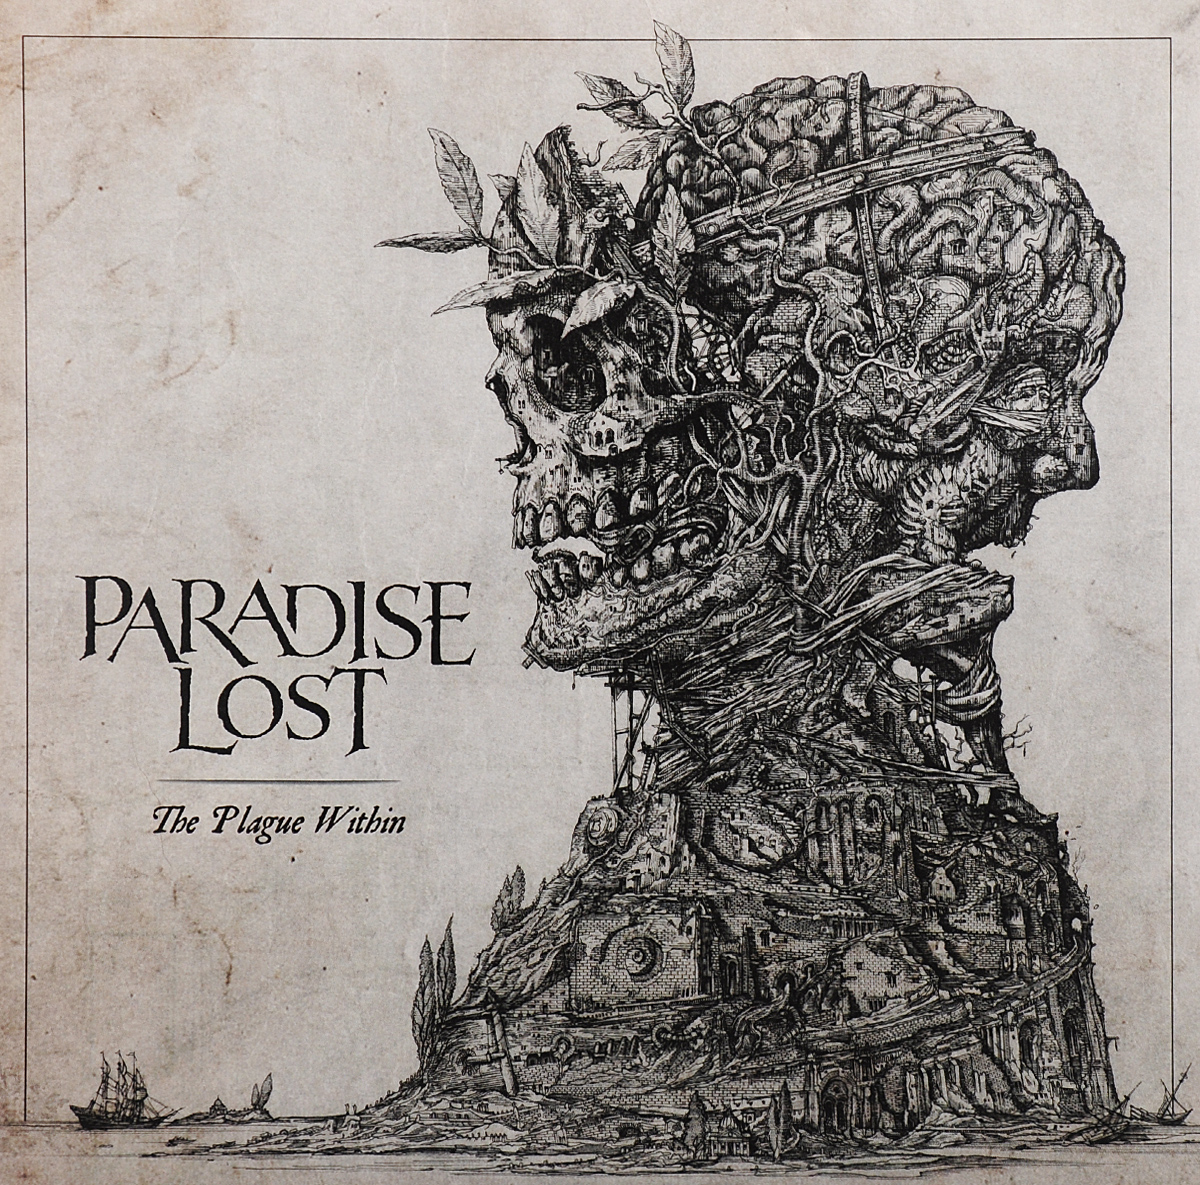 Paradise Lost Paradise Lost. The Plague Within (LP) 14 2013